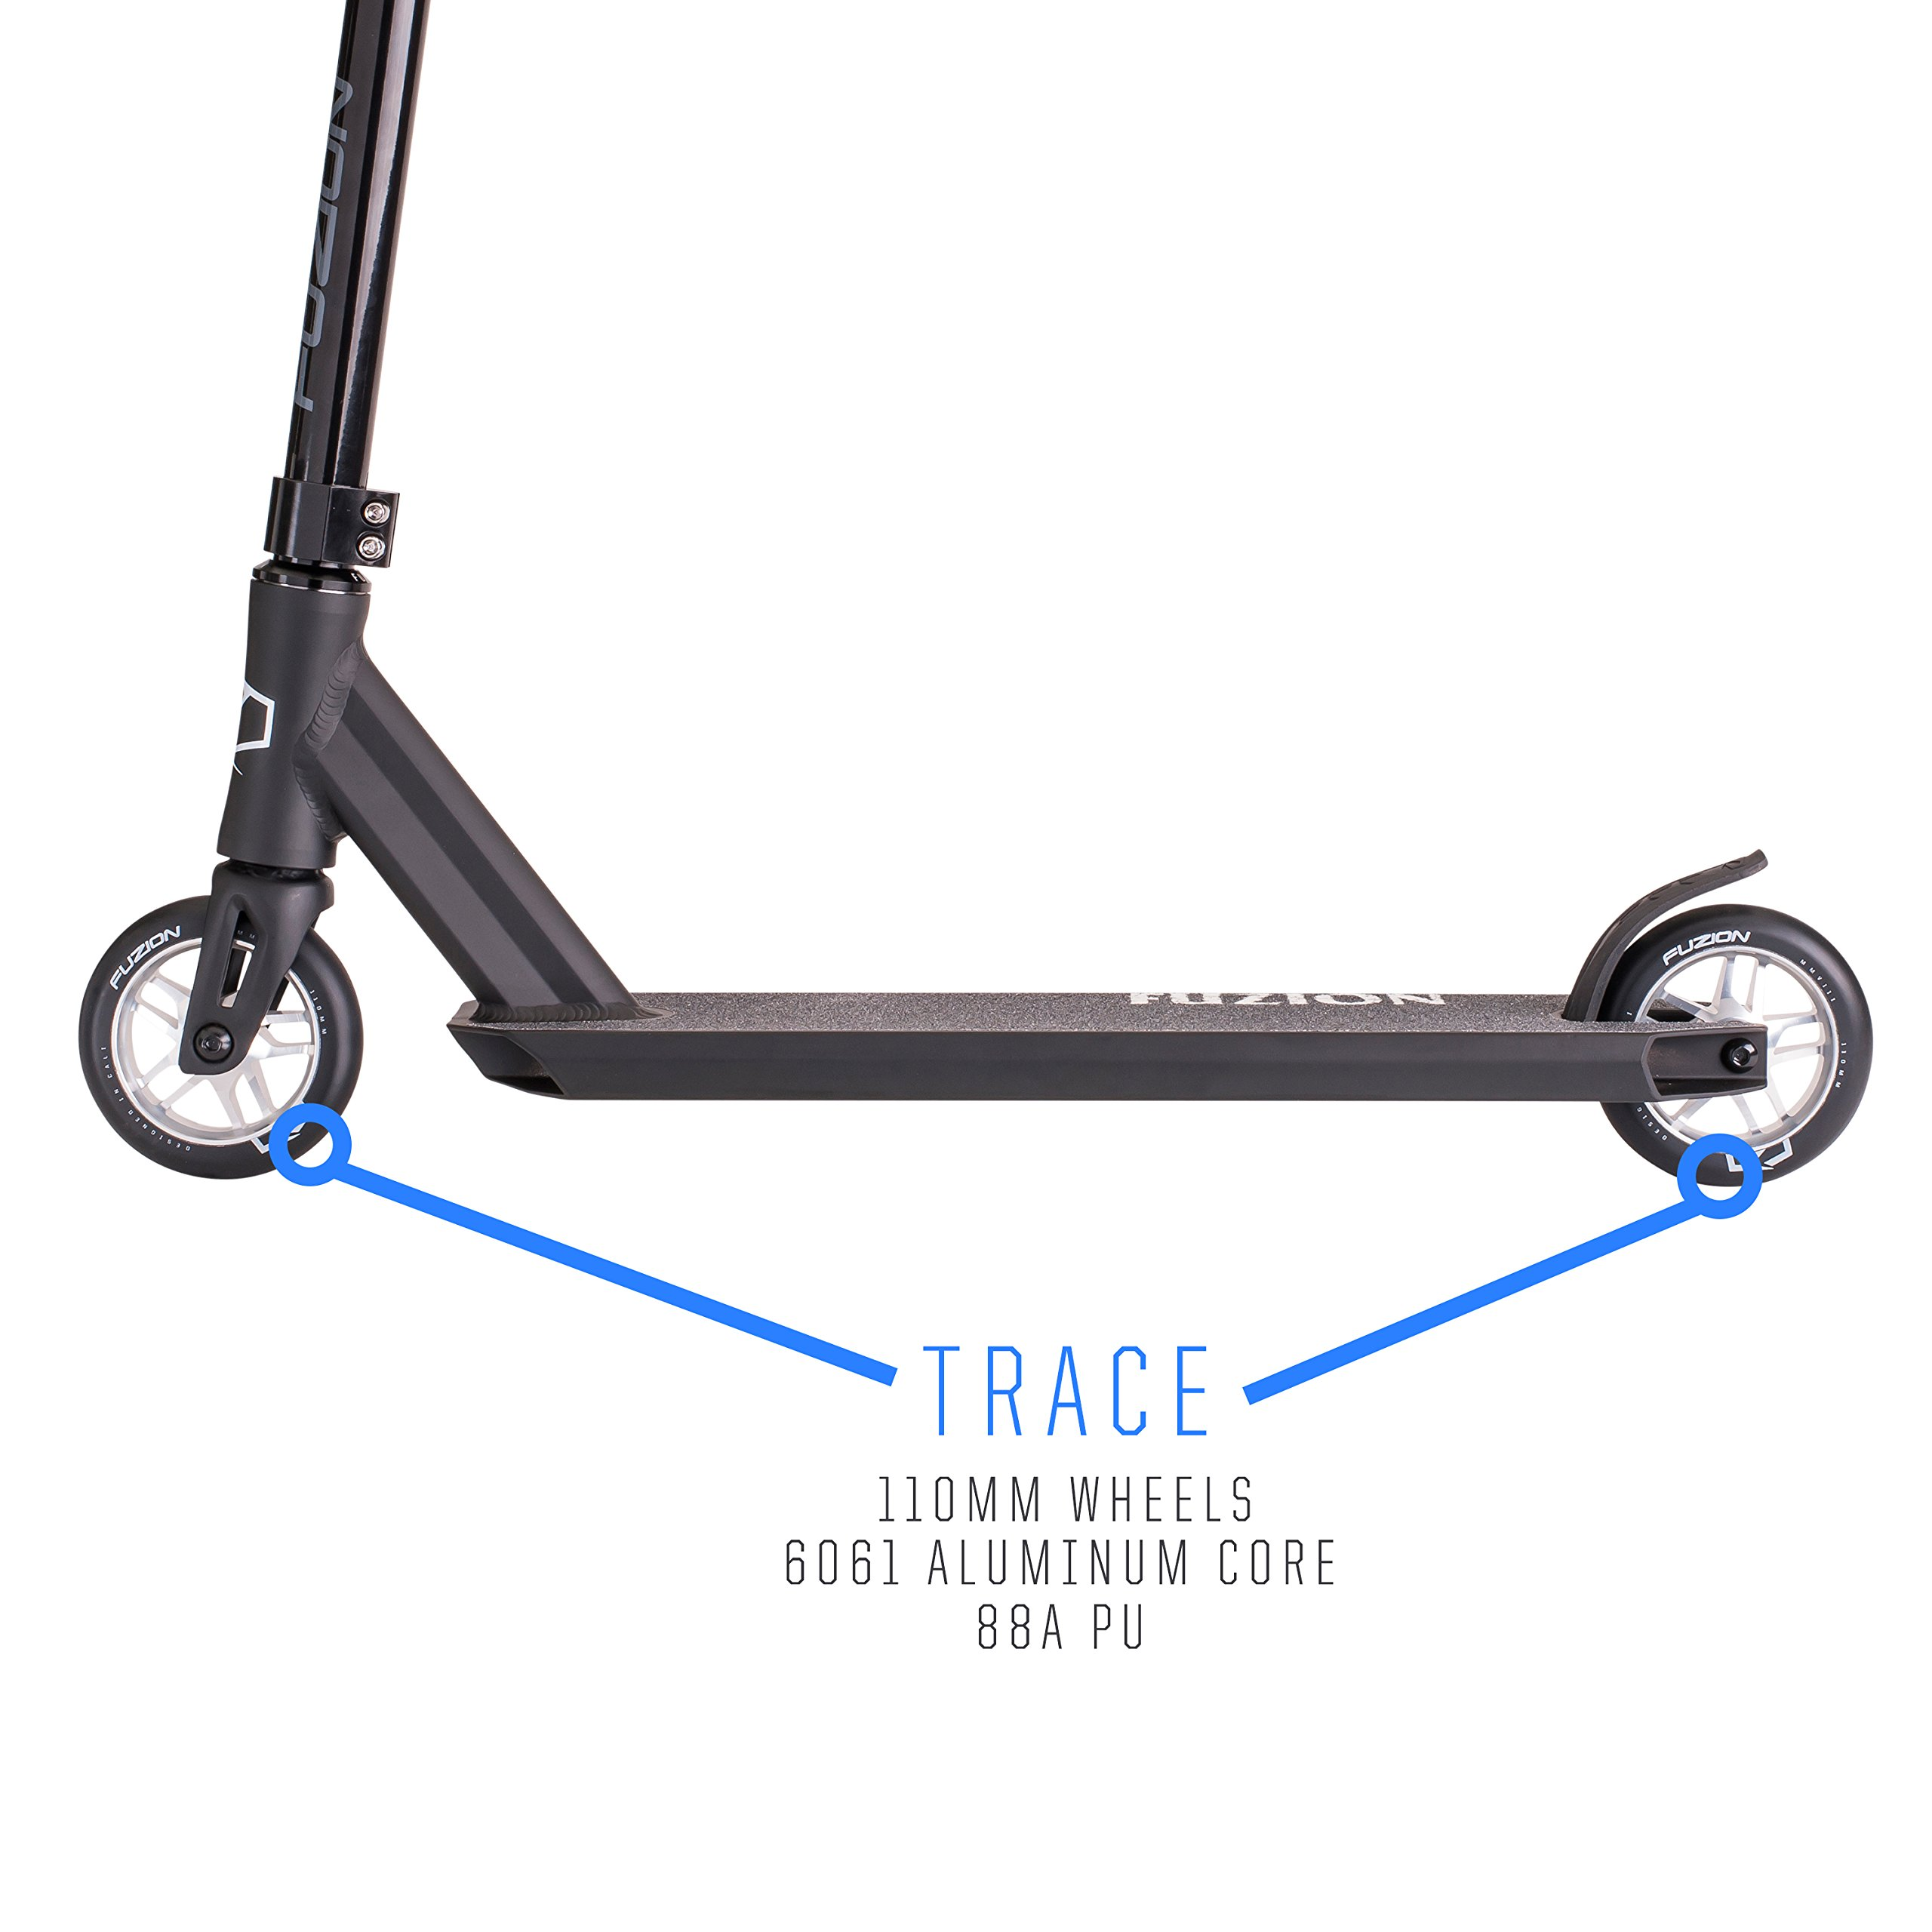 Fuzion Z250 Pro Scooters - Trick Scooter - Intermediate and Beginner Stunt Scooters for Kids 8 Years and Up, Teens and Adults – Durable, Smooth, Freestyle Kick Scooter for Boys and Girls (Black) by Fuzion (Image #3)